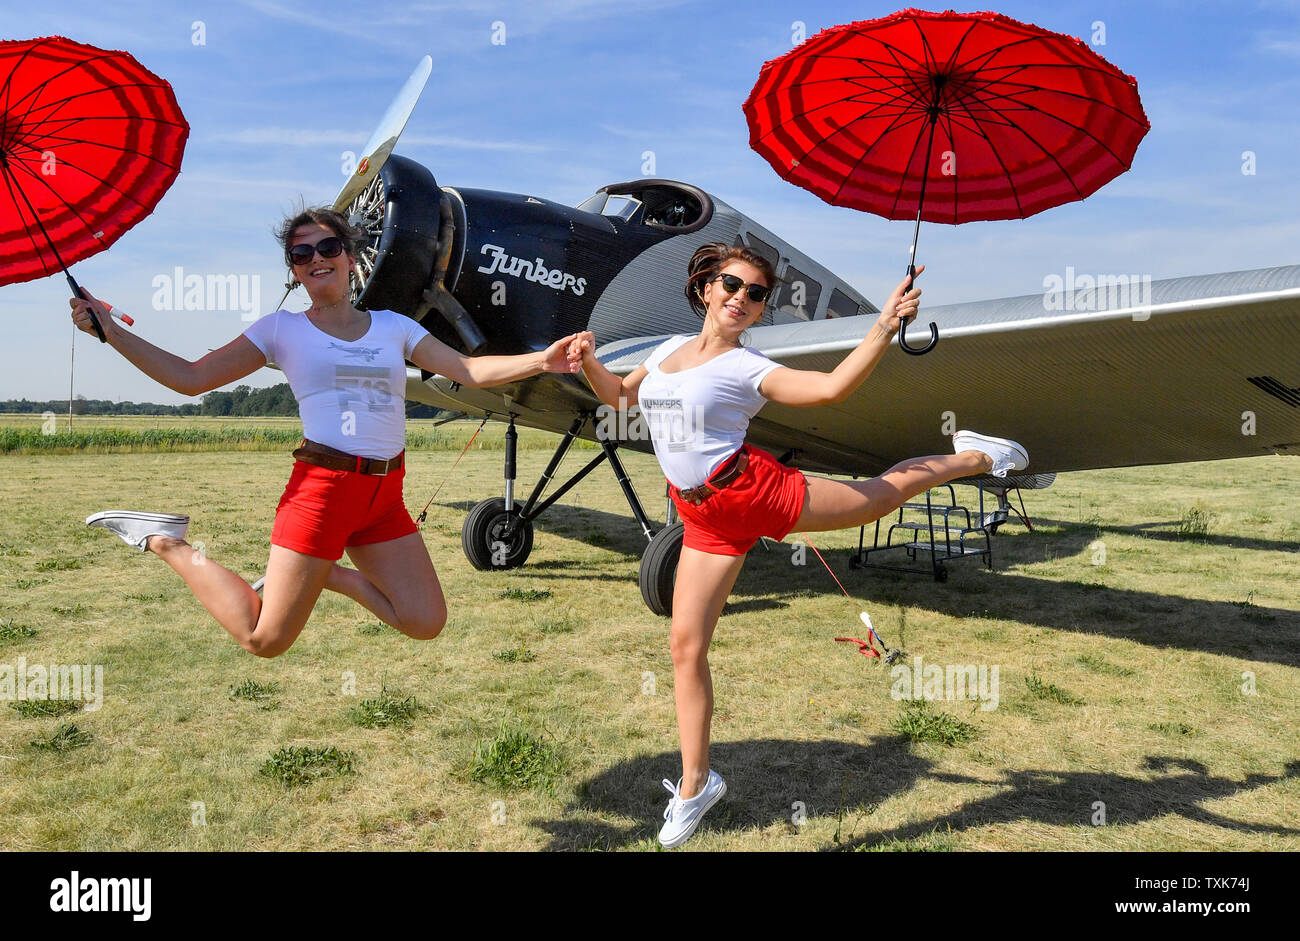 25 June 2019, Saxony-Anhalt, Dessau-Roßlau: The hostesses Pauline (l) and Vlada jump in front of a Junkers F 13 at the airfield in Dessau. Exactly 100 years ago, an aircraft of this type took off for the first time in Dessau. The aircraft, designed by aircraft pioneer Hugo Junkers, was the world's first all-metal commercial aircraft and is regarded as a pioneer in civil aviation. Since 2016, the machine has again been manufactured in small series in Switzerland. Photo: Hendrik Schmidt/dpa-Zentralbild/dpa - Stock Image